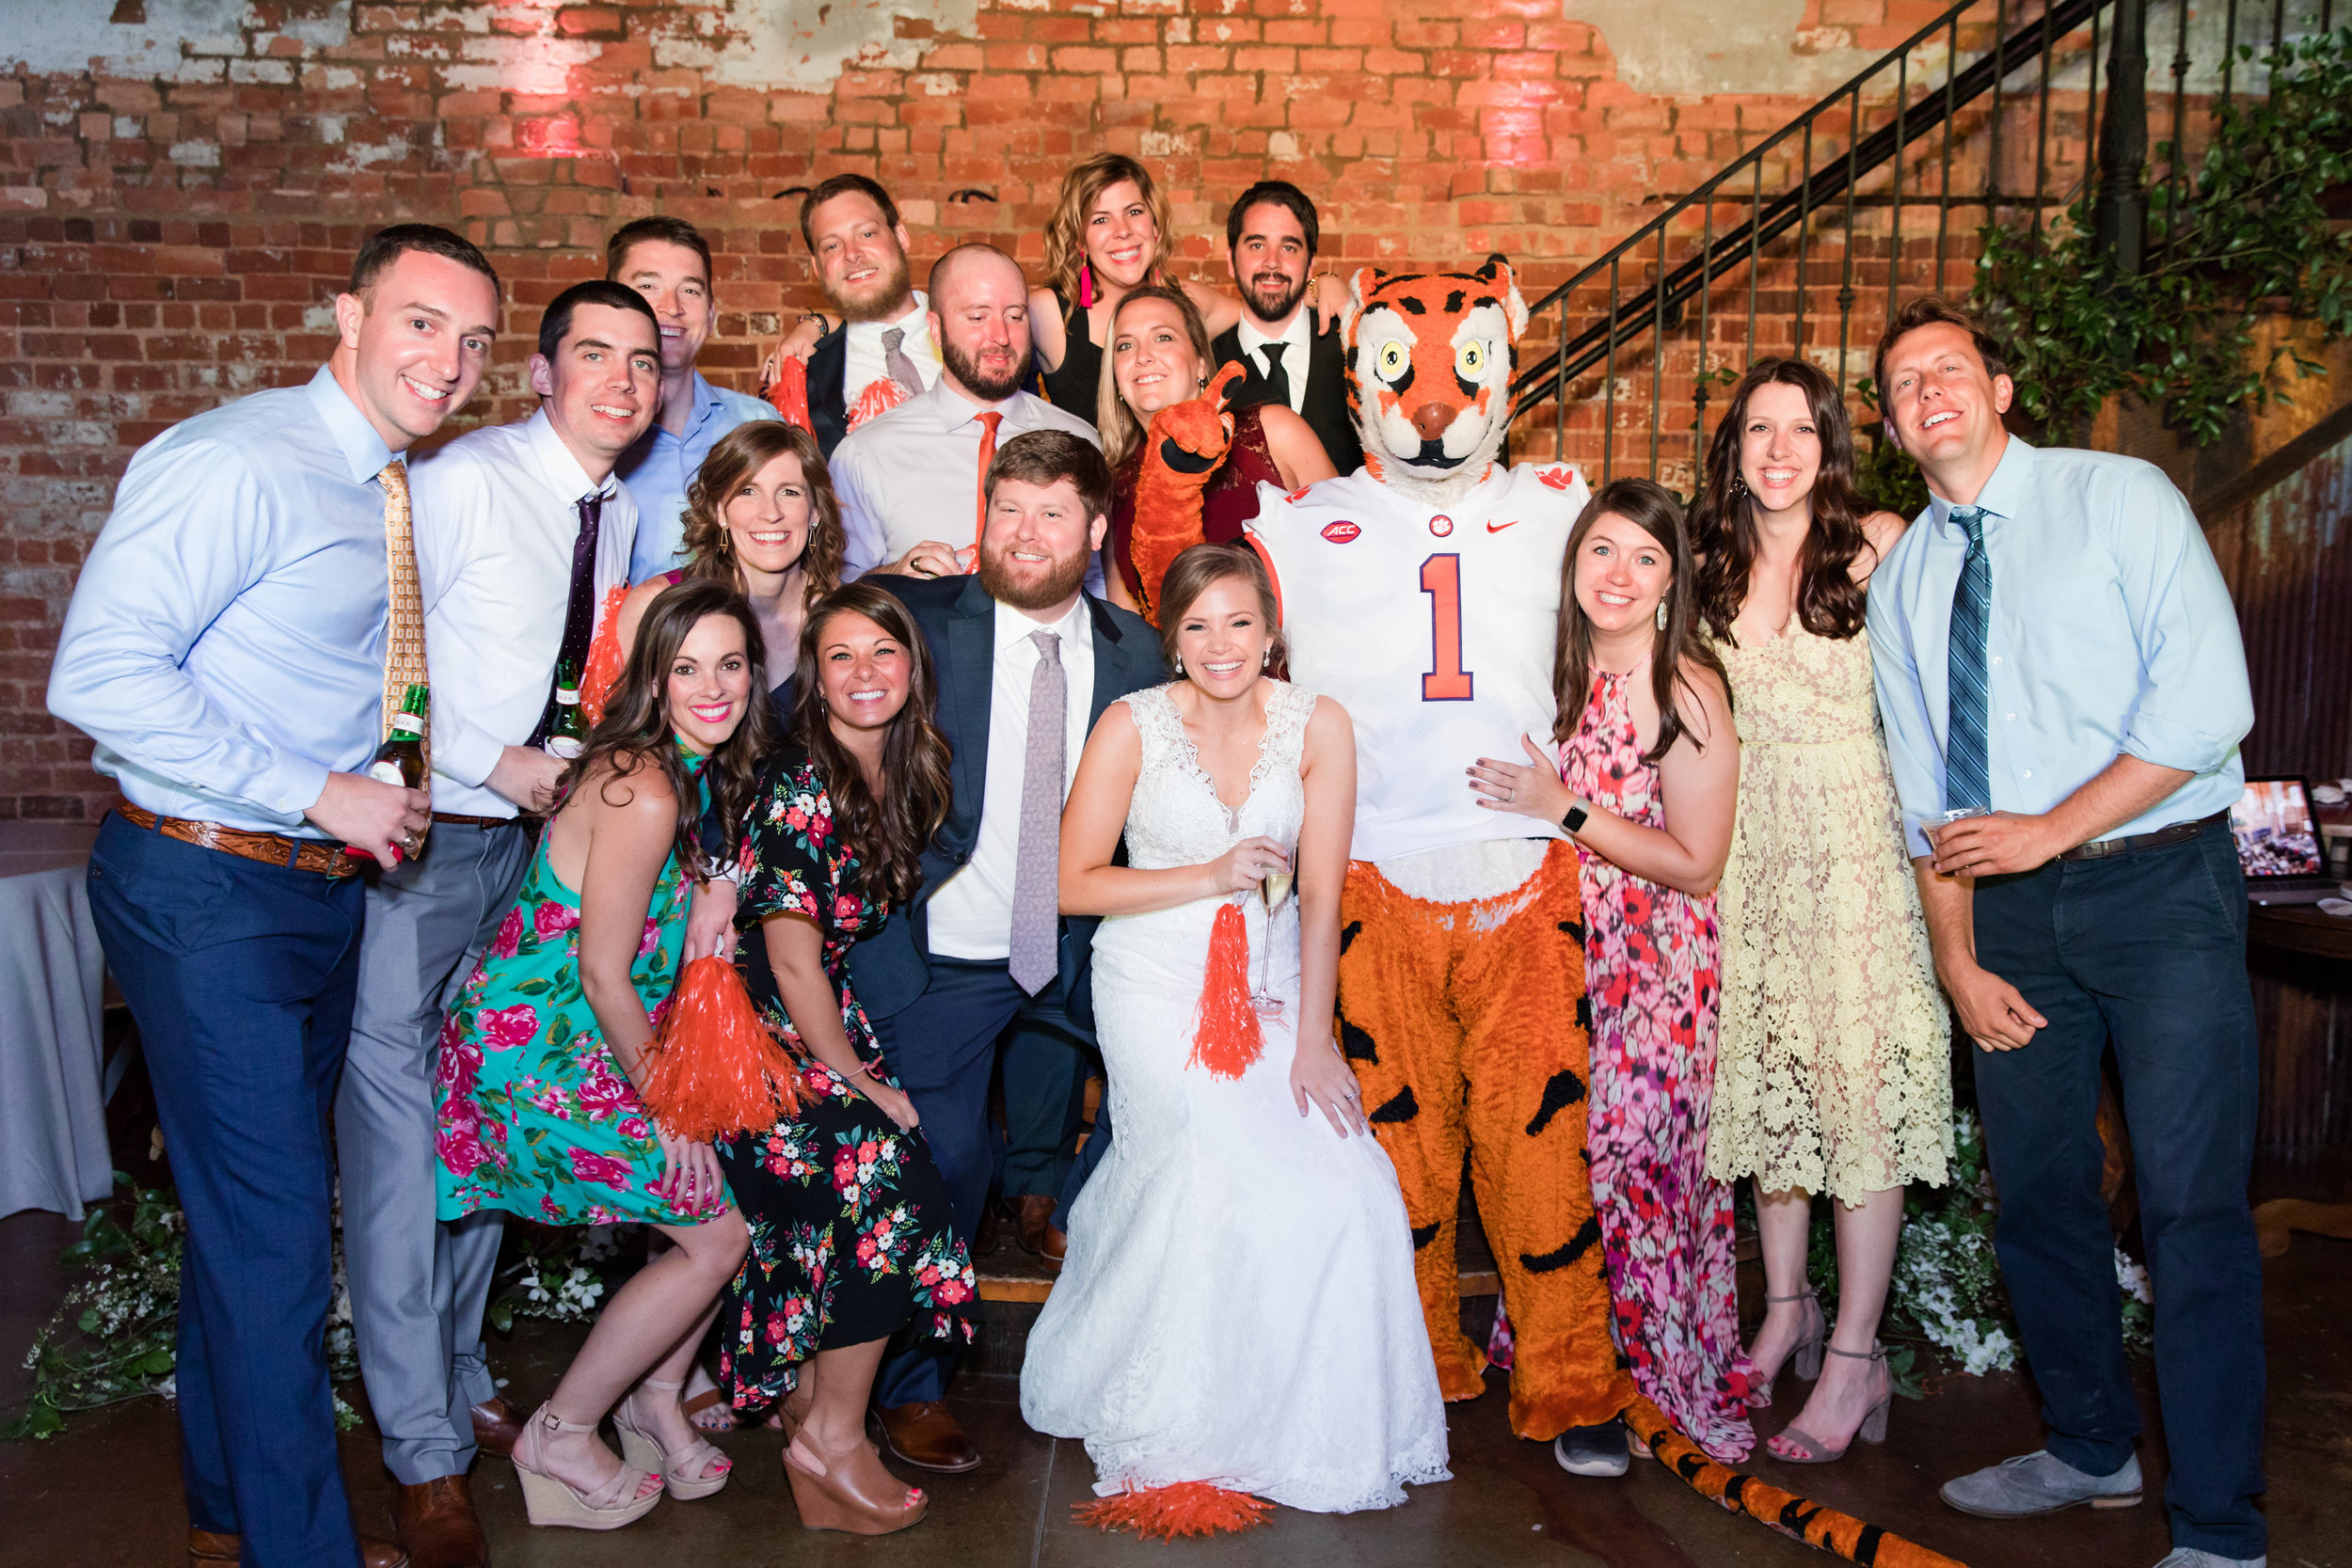 Wedding-DJ-Greenville-SC-Old Cigar-Warehouse-Megan-and-Ben114.jpg